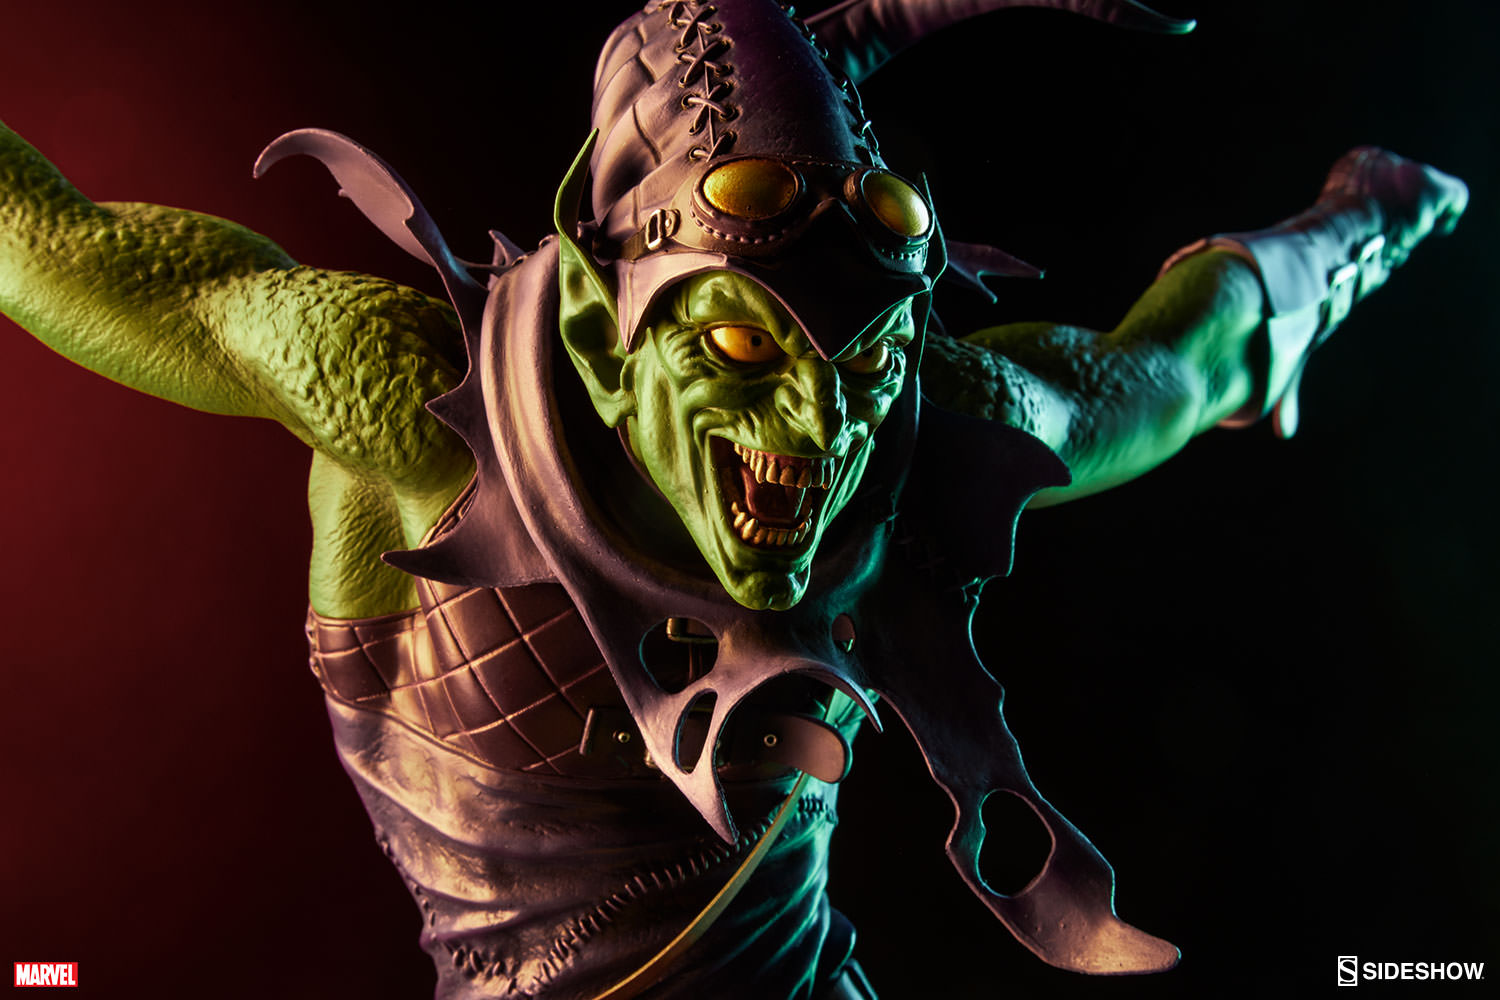 Hjc Fg 17 >> Marvel Green Goblin Premium Format(TM) Figure by Sideshow Co | Sideshow Collectibles